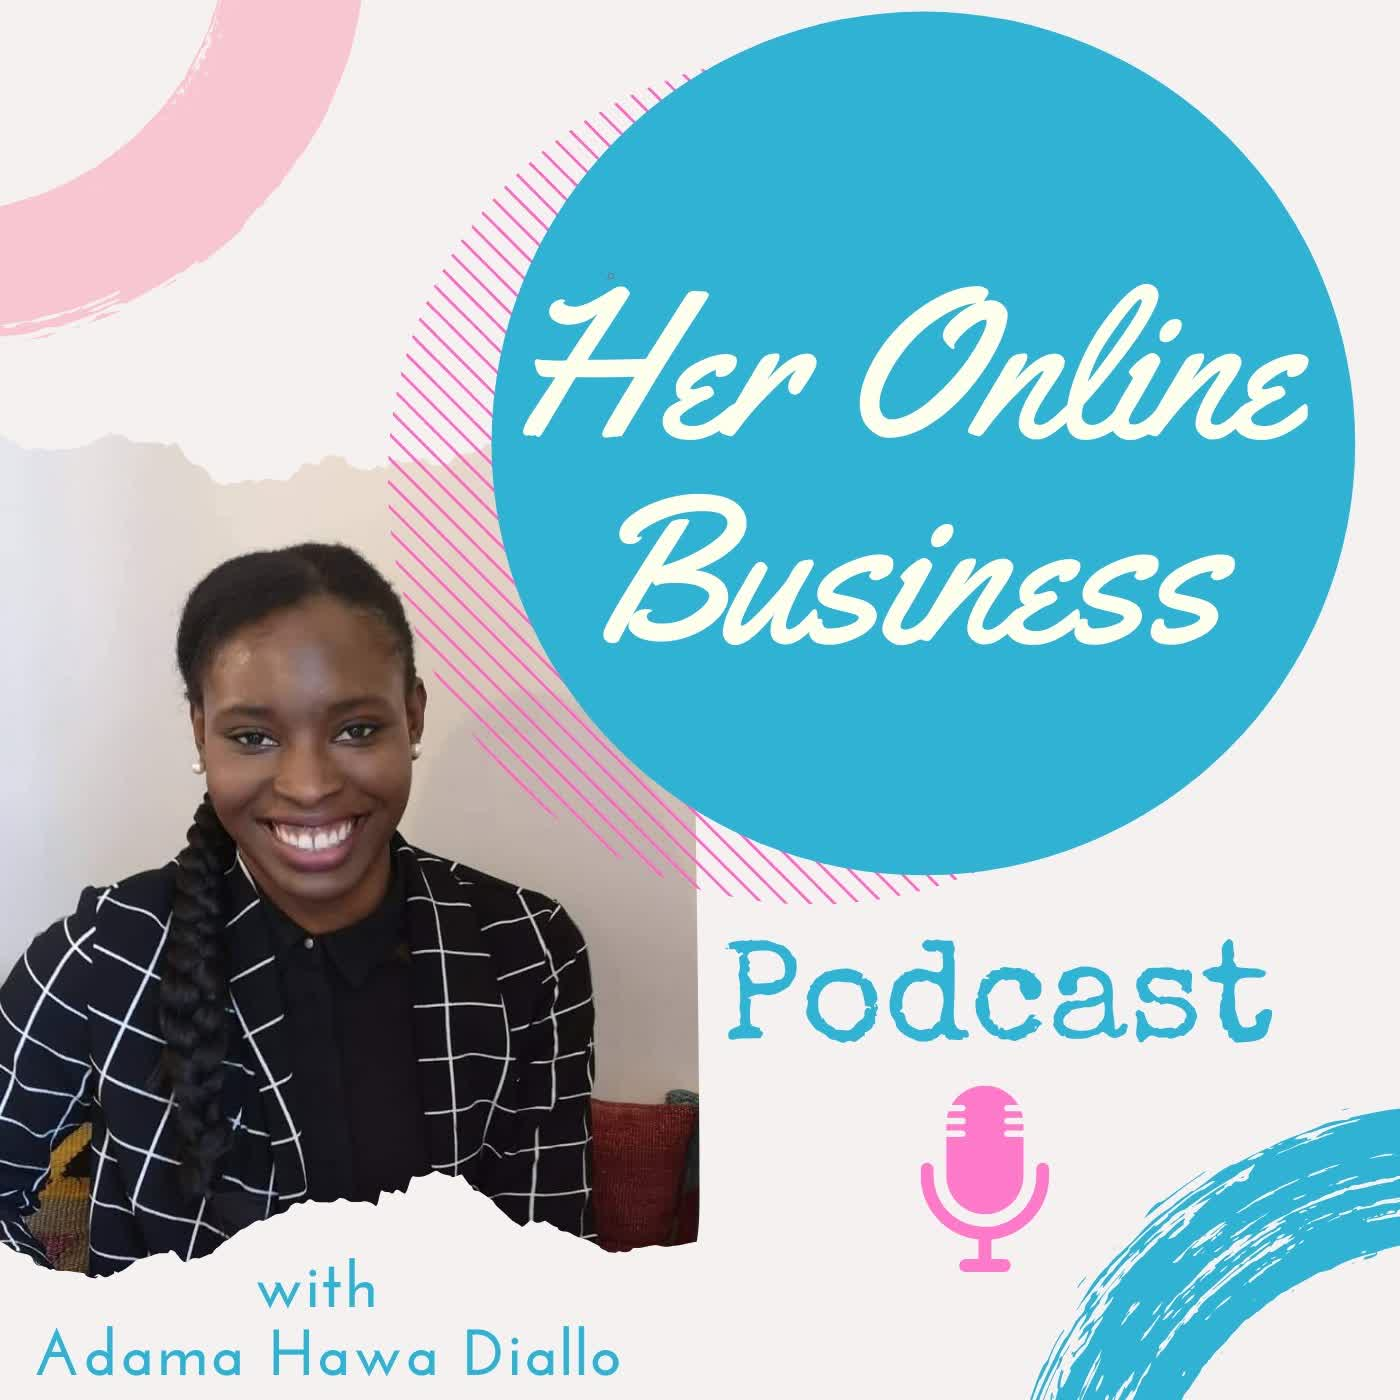 Her Online Business